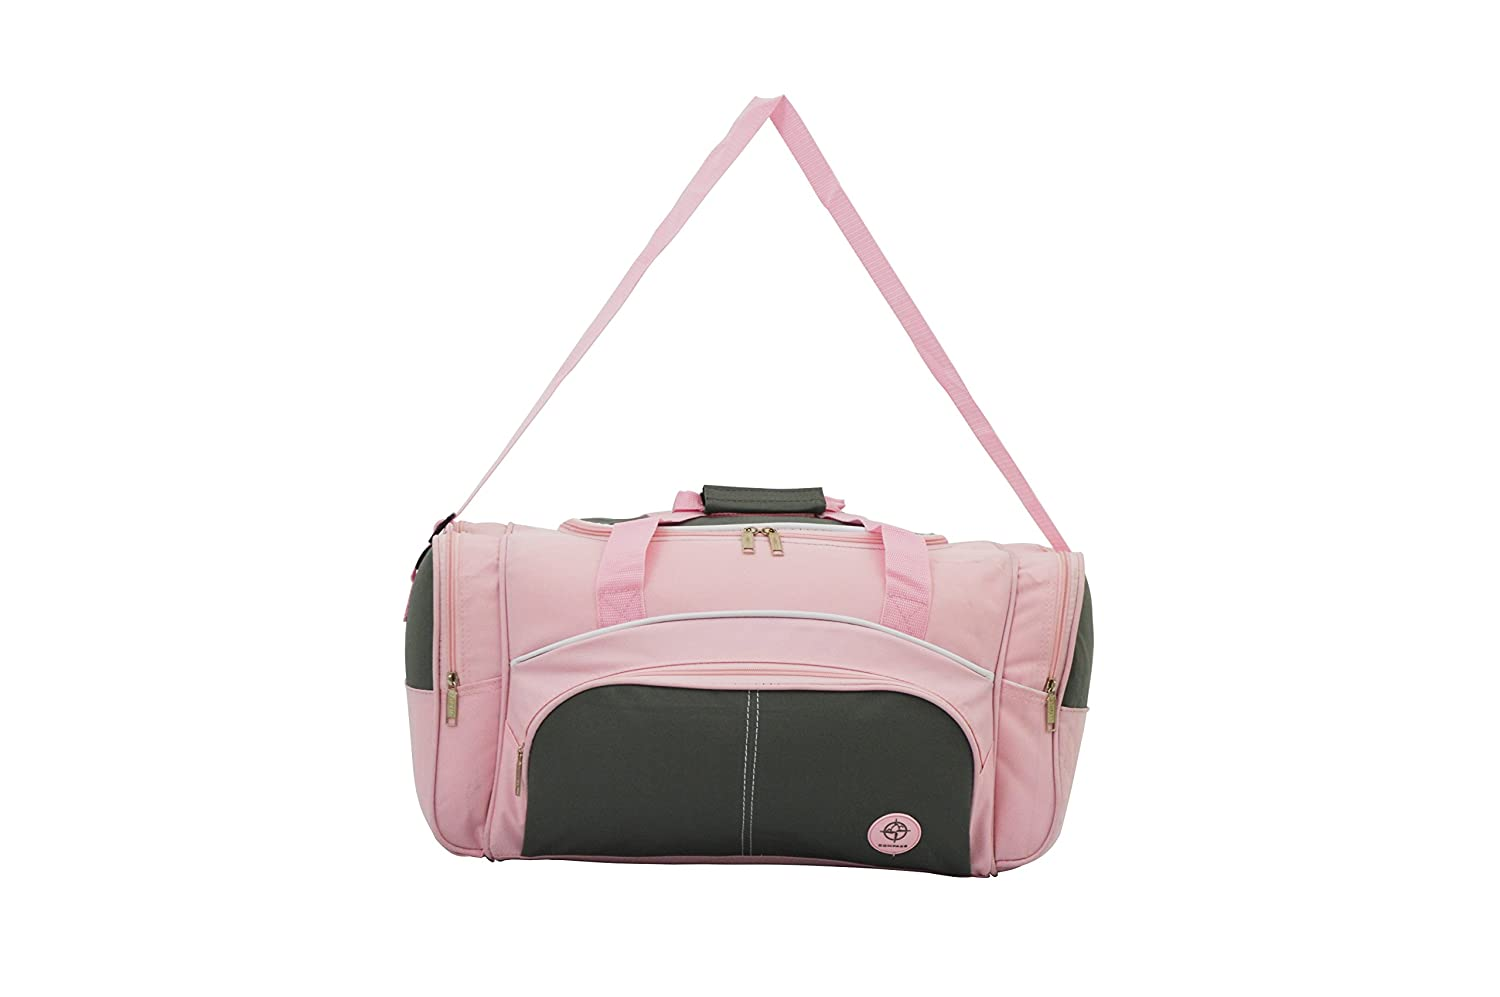 55efc55a6a Pink Ladies Holdall Weekend Gym Bag with an Adjustable Shoulder Strap and side  Pockets  Amazon.co.uk  Luggage